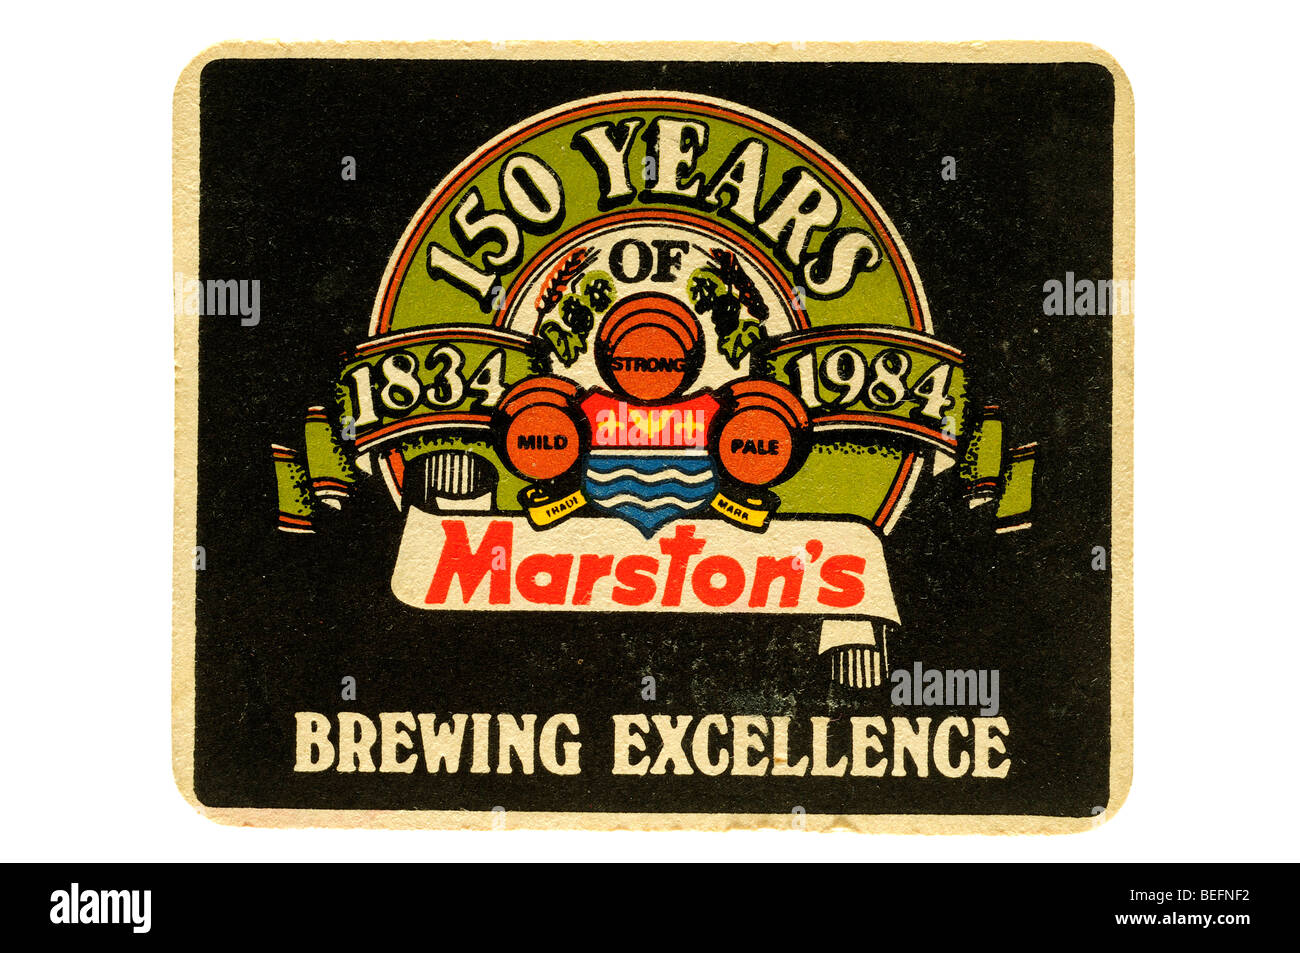 150 years of marstons 1834 1984 brewing excellence - Stock Image